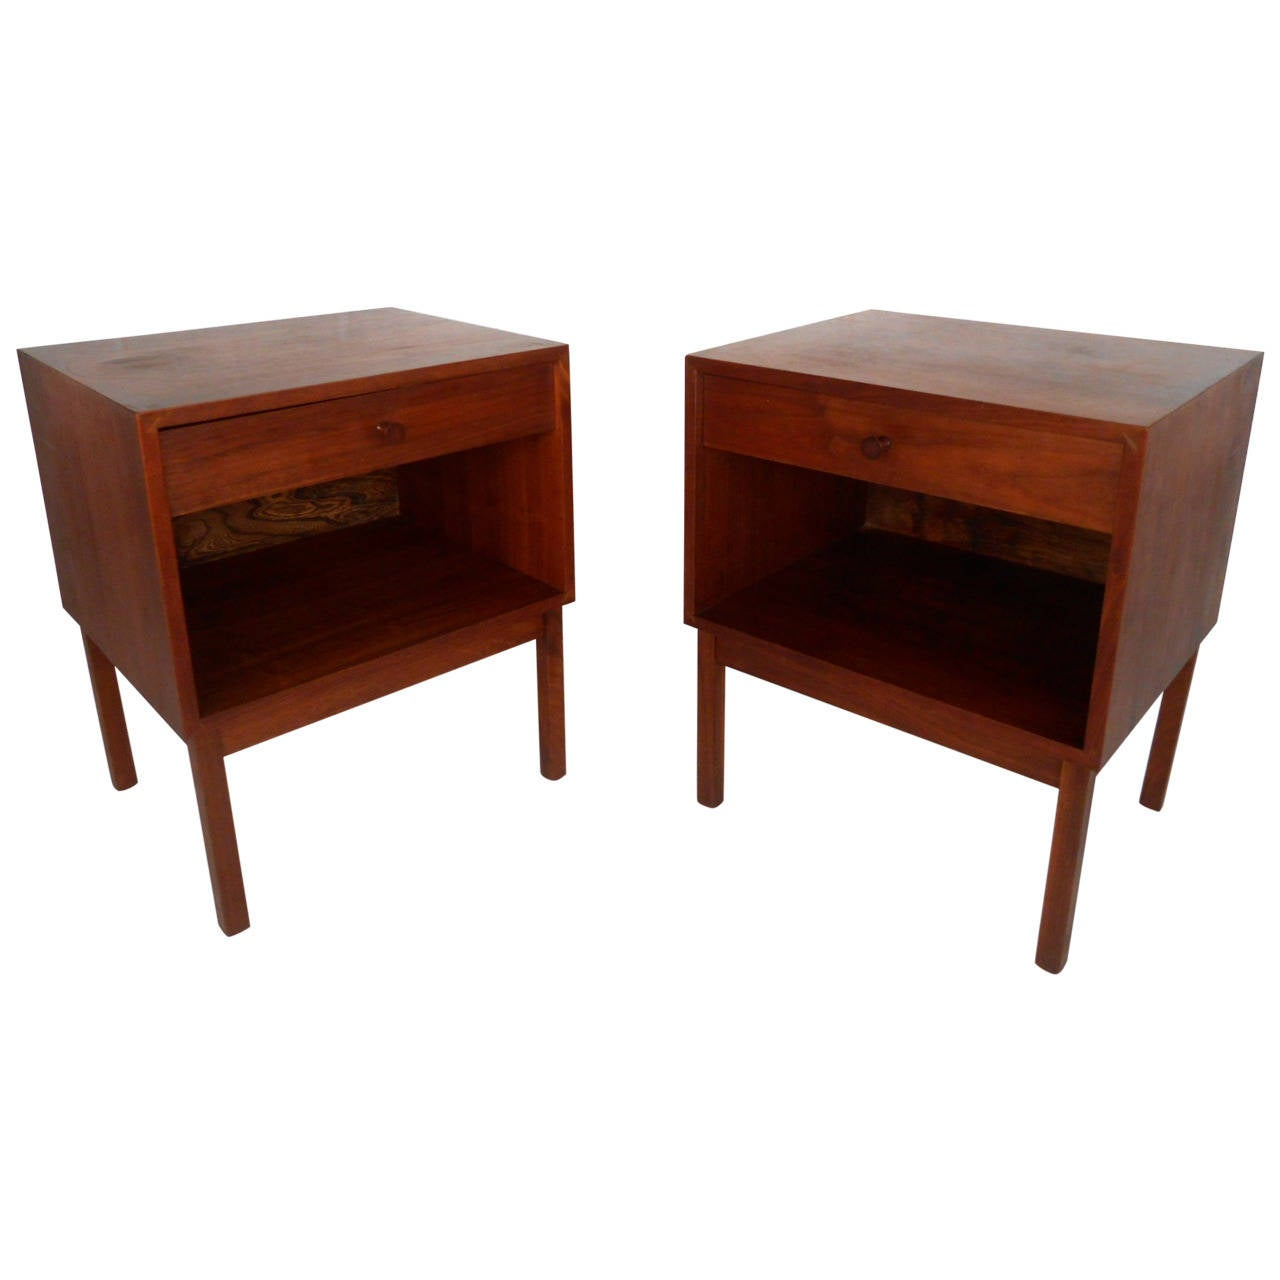 Pair mid century modern single drawer nightstands at 1stdibs